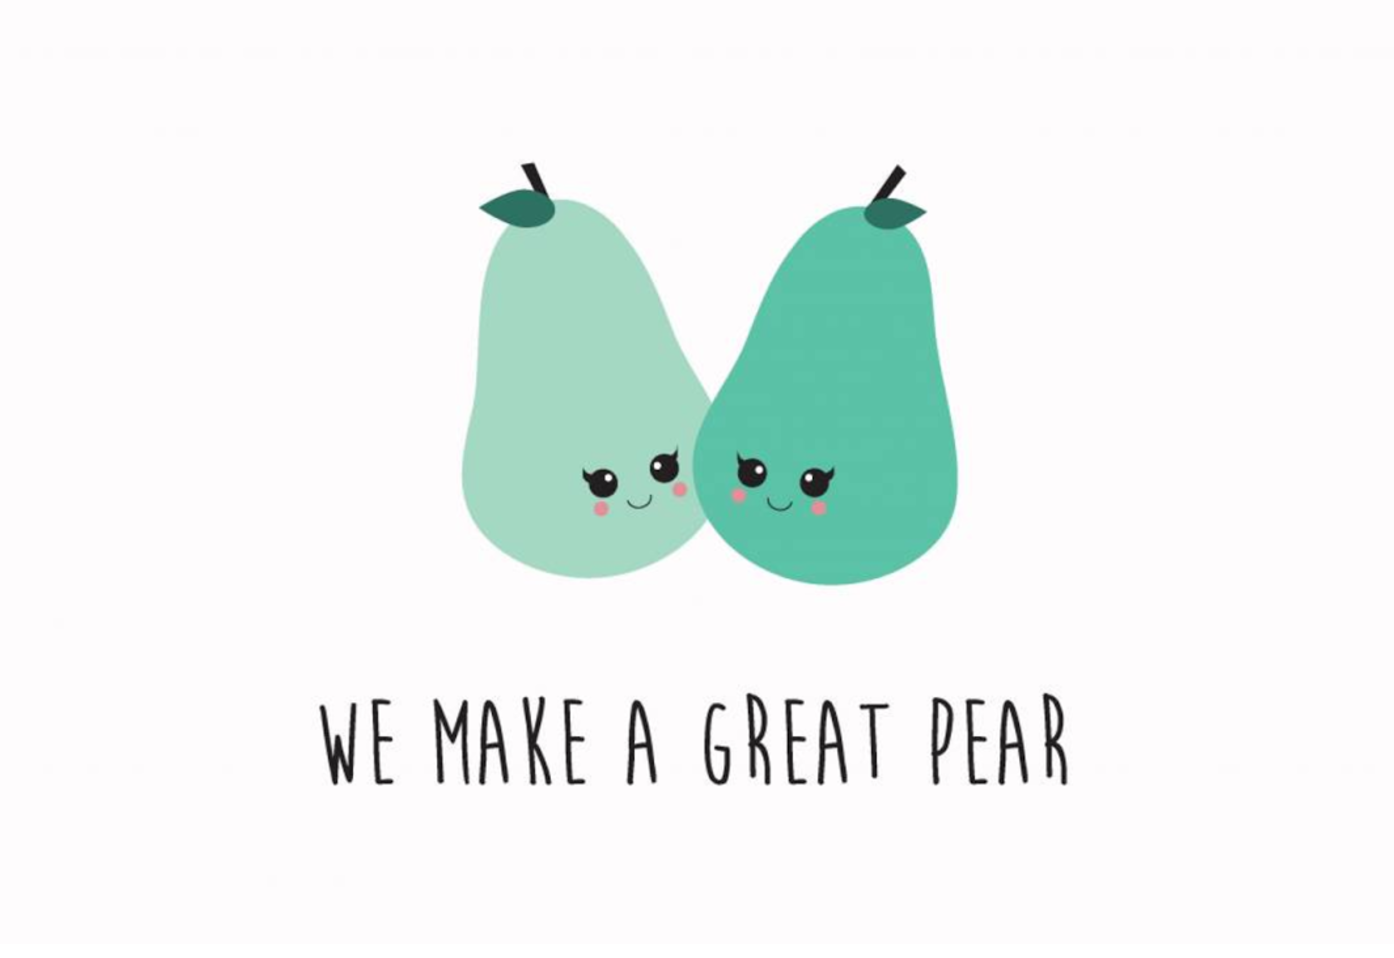 We make a great pear funny image - HackerOne-Fin Devr Finnovate Conference